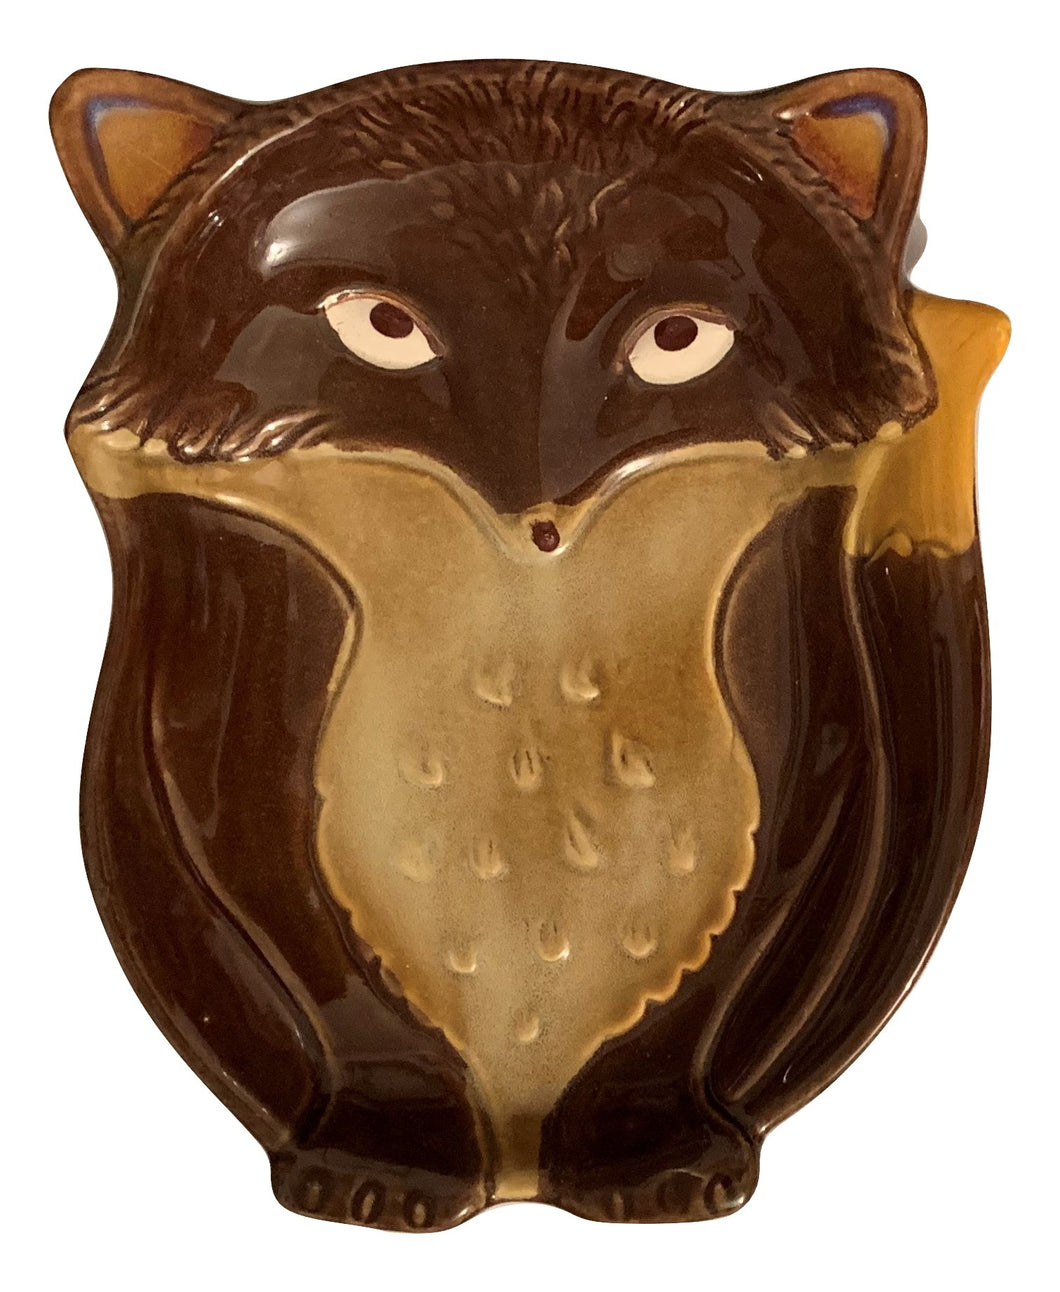 Natures Home Ceramic Fox Spoon Rest Brown